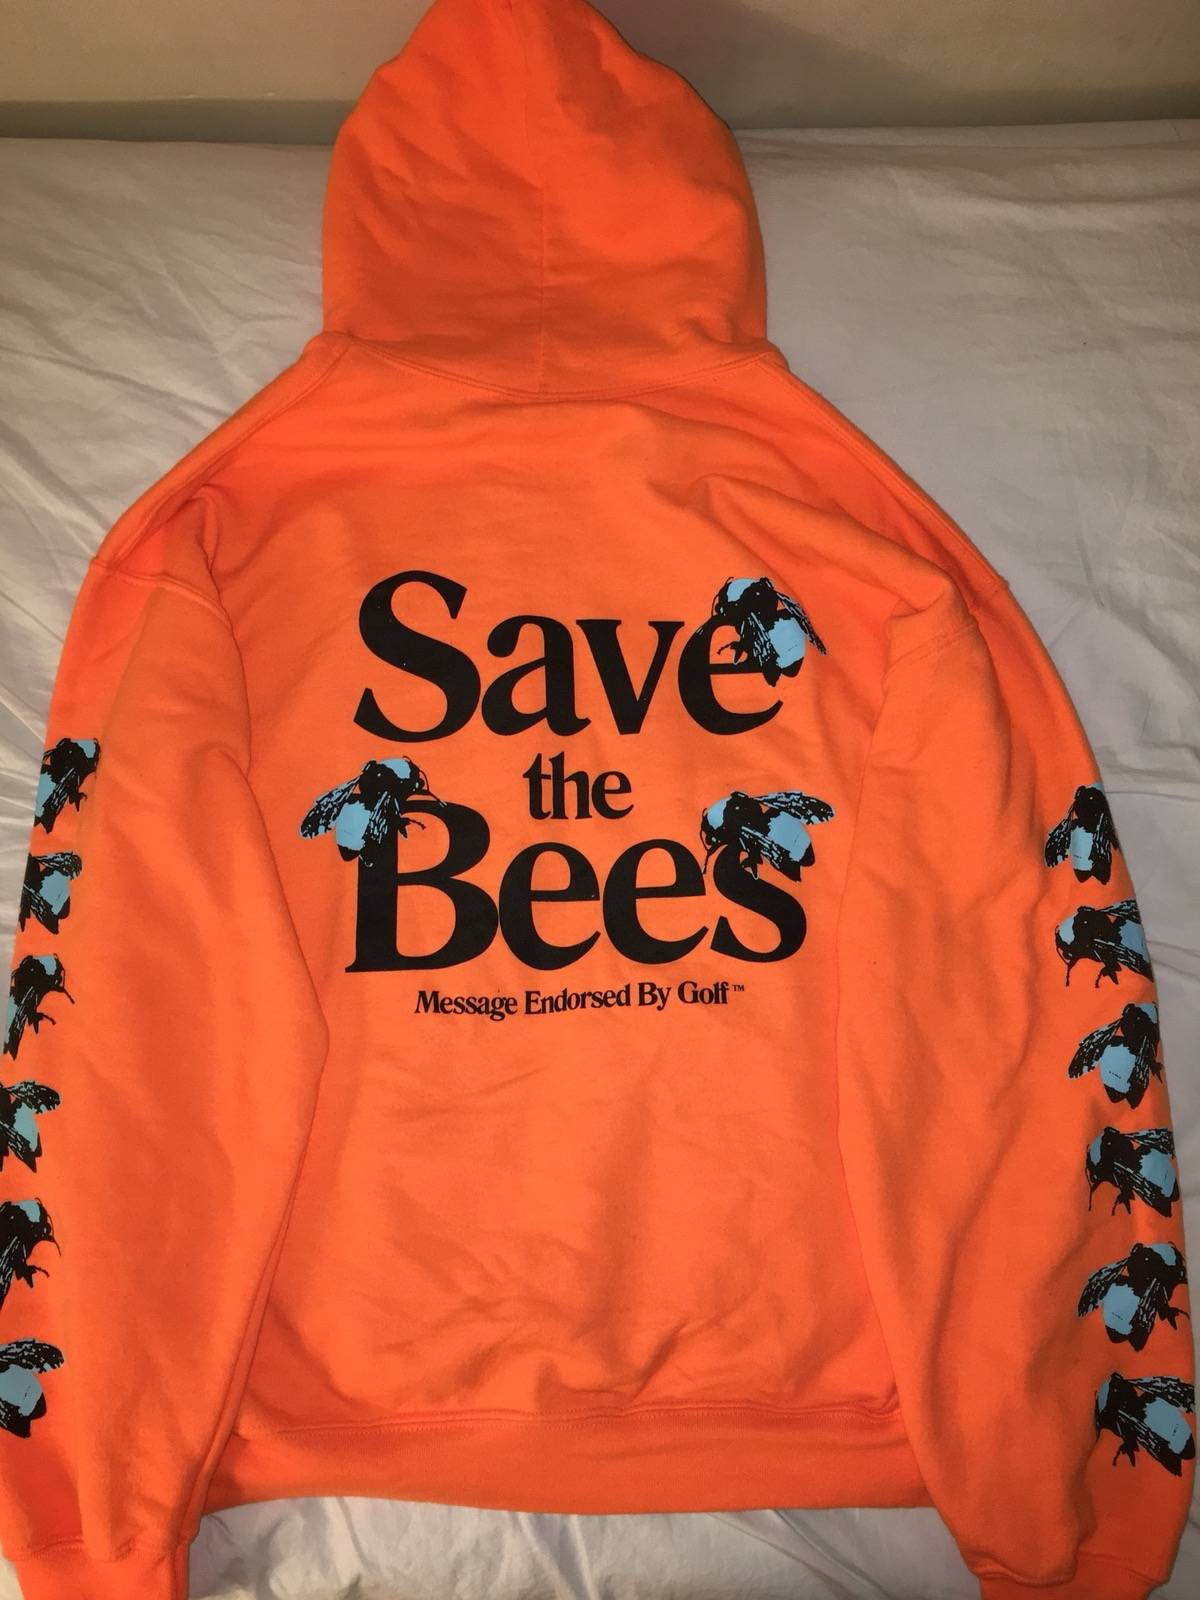 151587ef3f8a Golf Wang Save The Bees Hoodie Size l - Sweatshirts   Hoodies for Sale -  Grailed